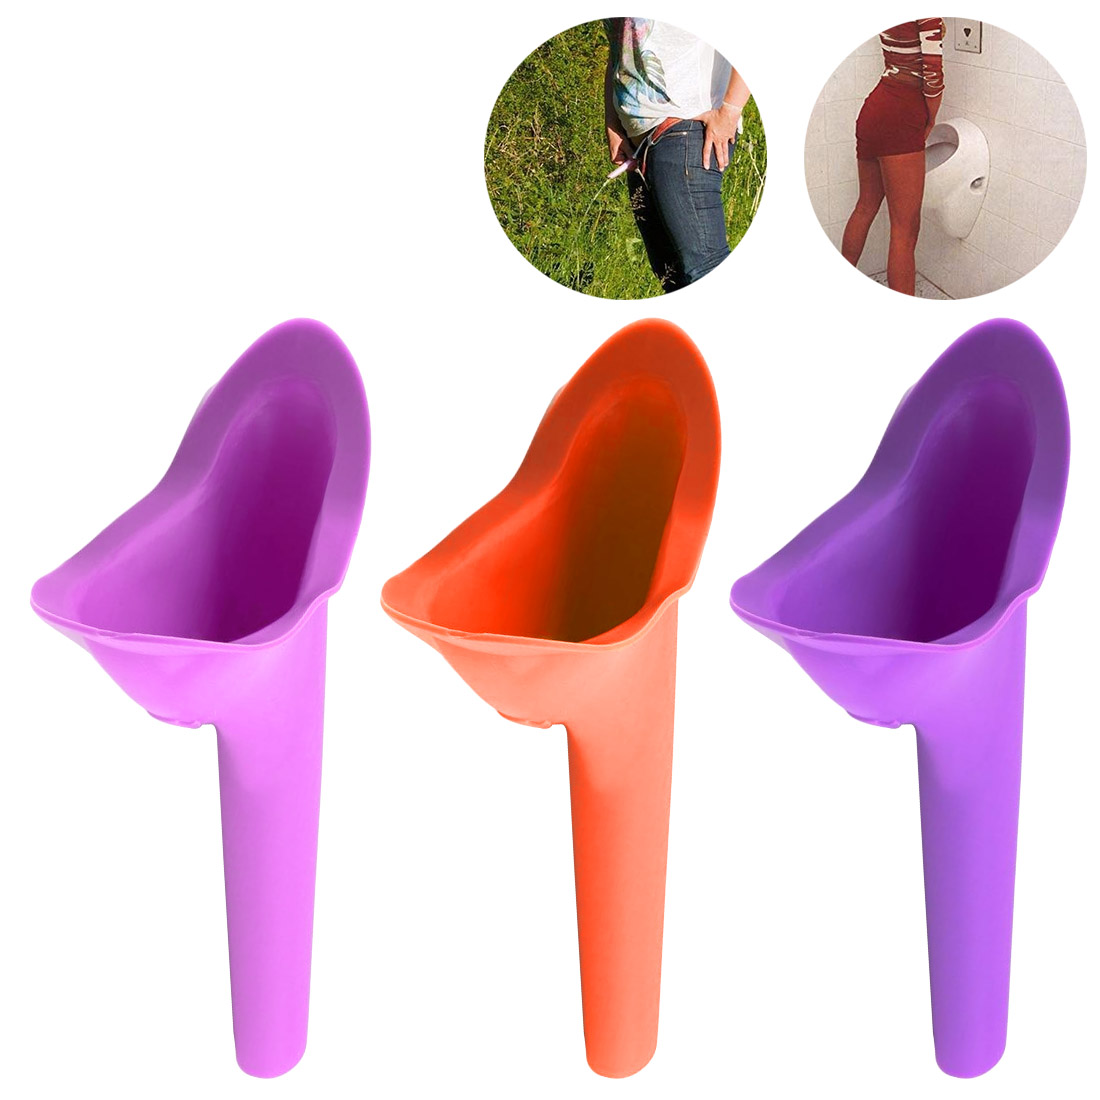 Women Camping Urination Device Soft Slicone Funnel Urinal Female Travel Urination Toilet Women Stand Up Pee Urinal Toilet